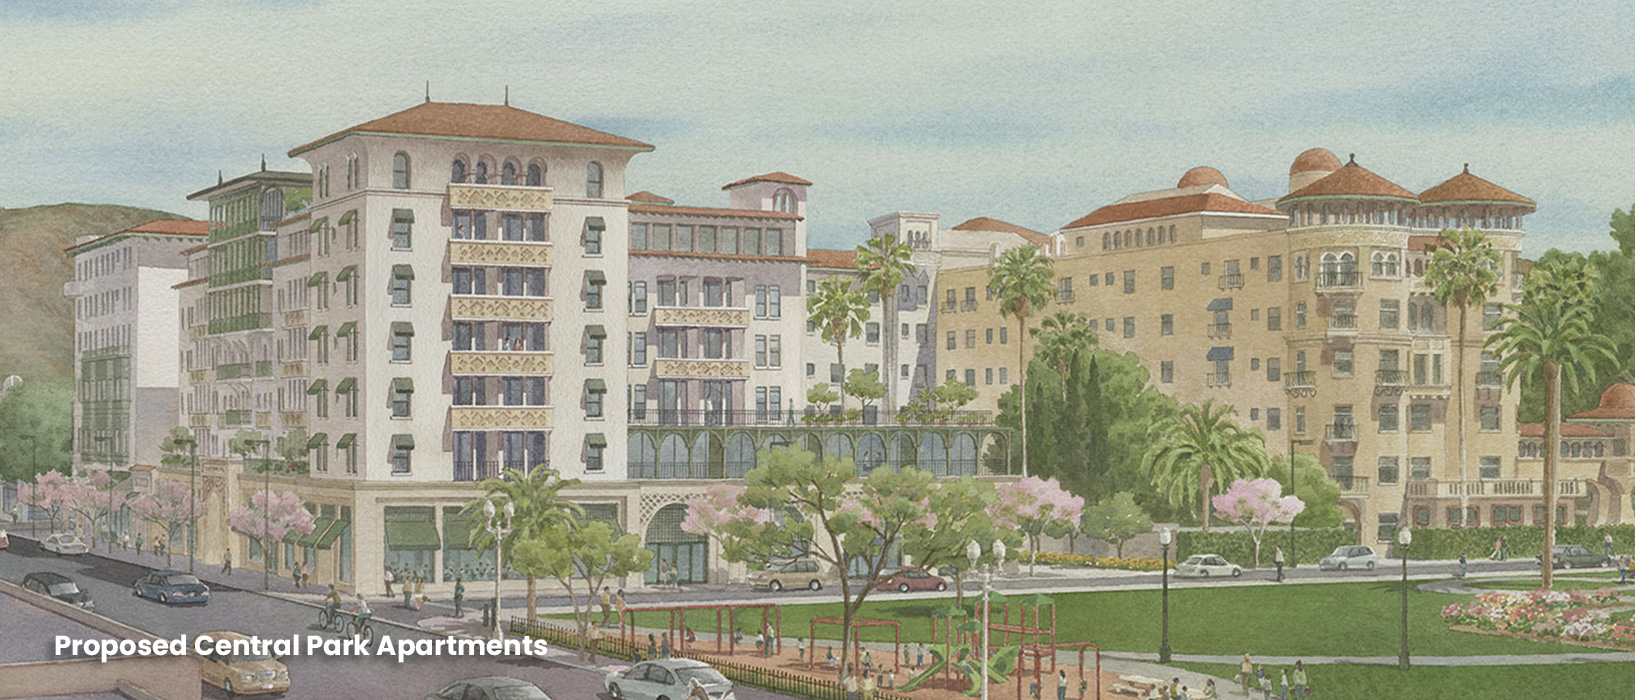 Rendering of proposed Central Part Apartments